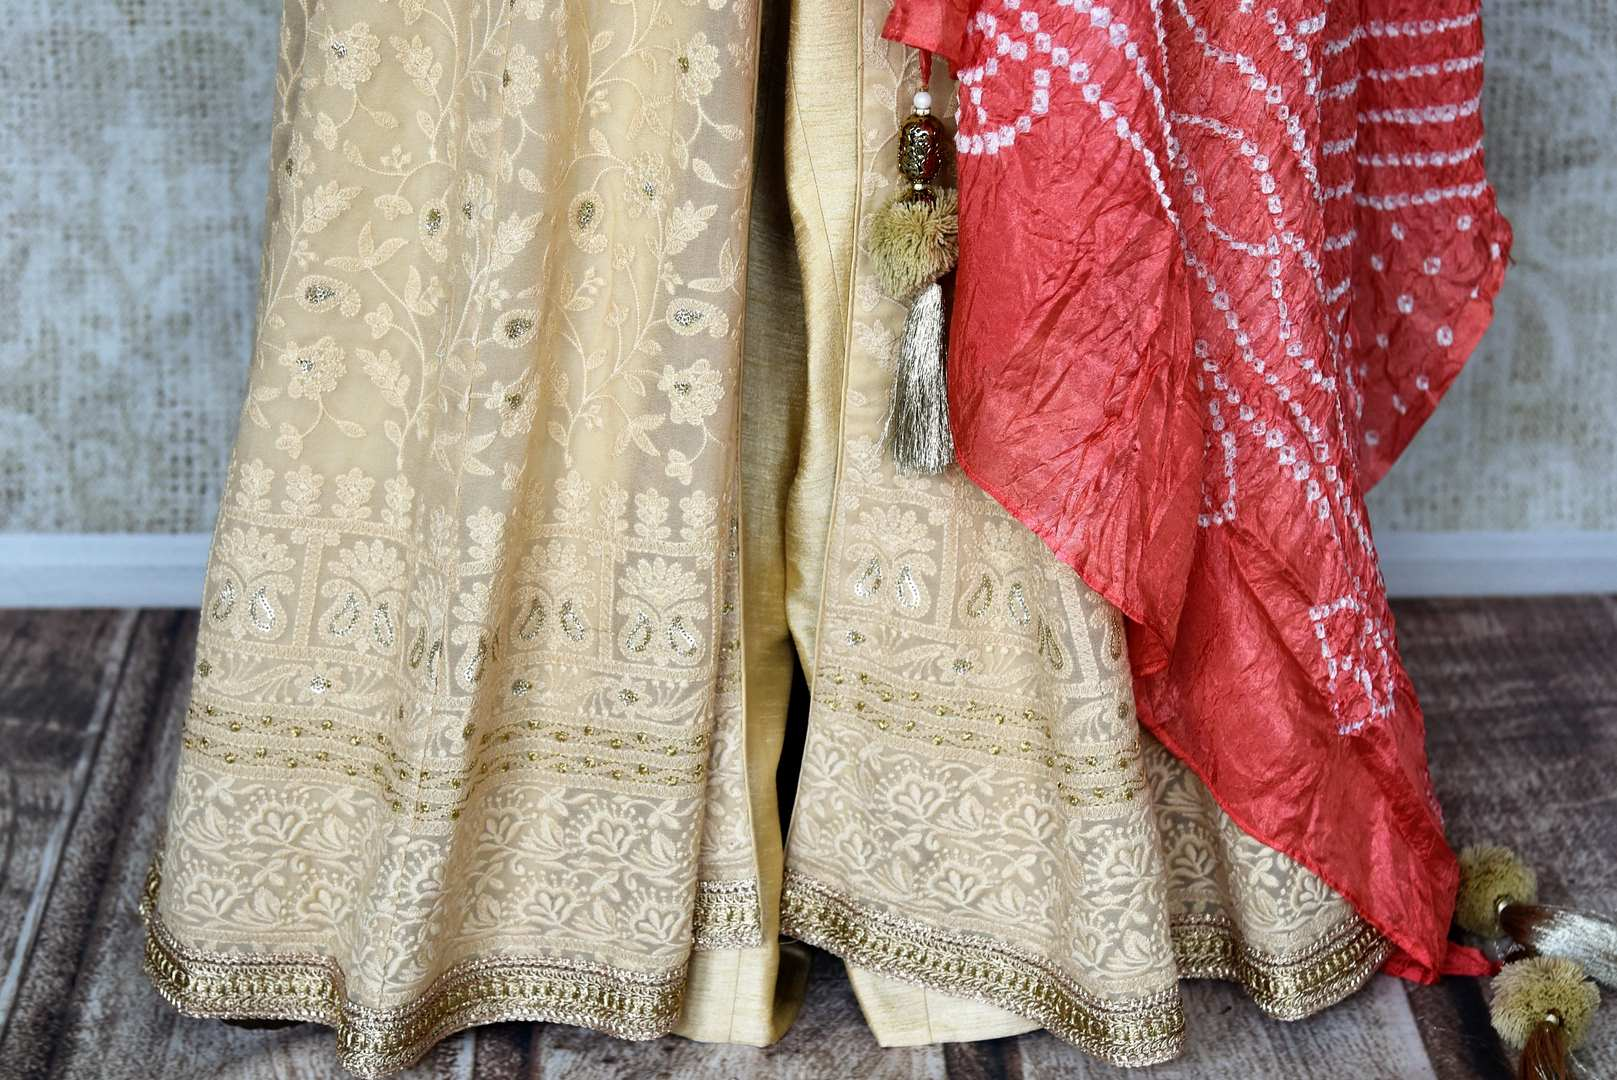 Buy beige embroidered georgette sharara online in USA with palazzo and dupatta from Pure Elegance. Add exquisite Indian designer suits, Indian dresses, wedding lehengas in beautiful styles and designs to your ethnic wardrobe from our Indian clothing store in USA or shop online.-bottom